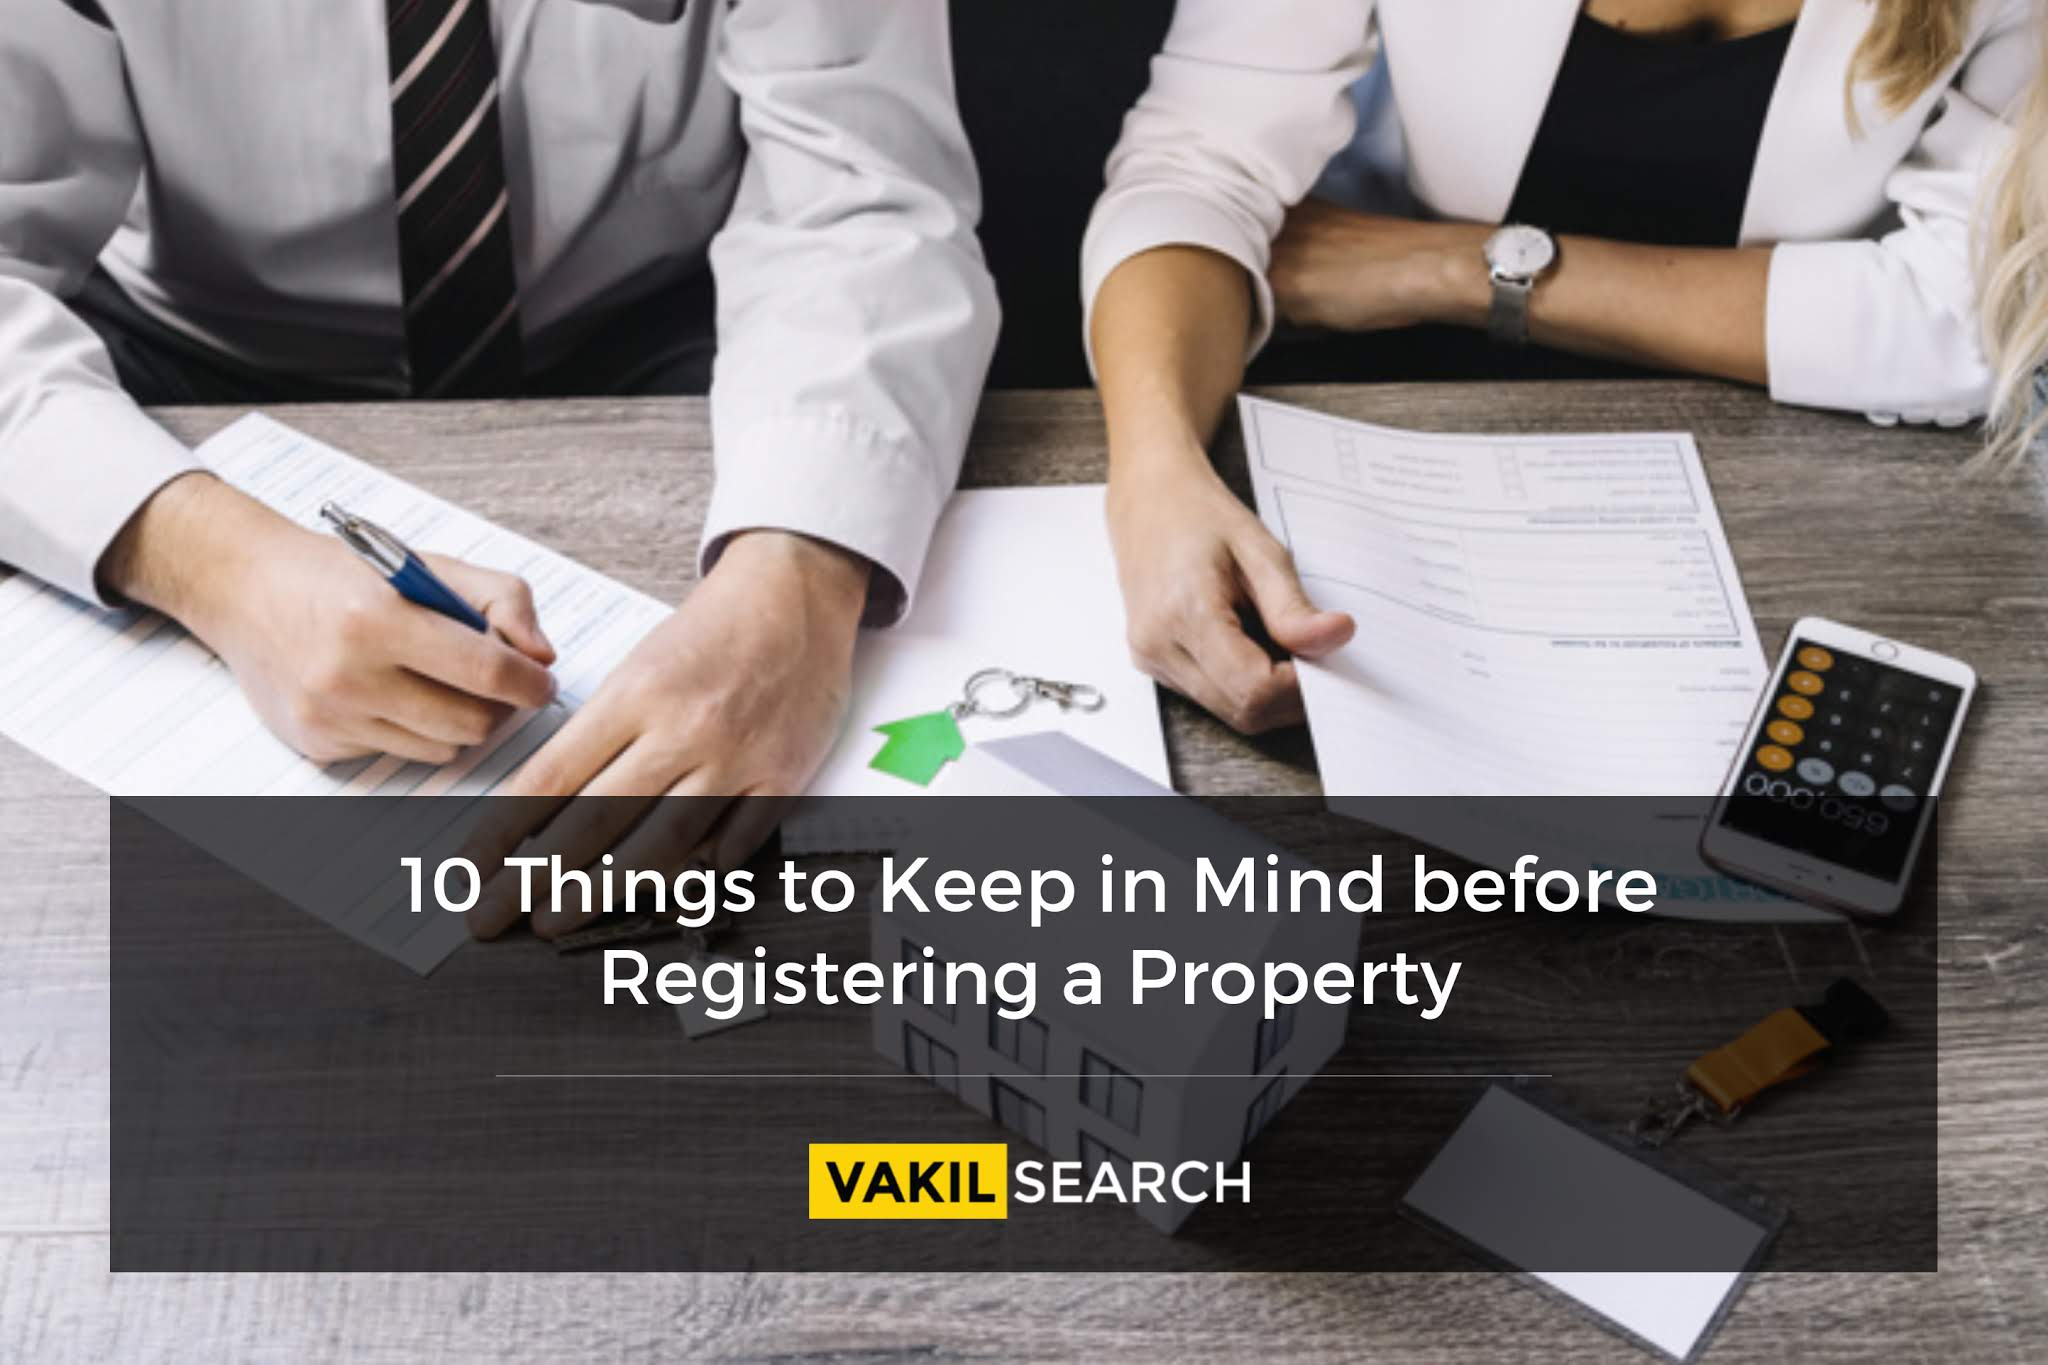 10 Things to Keep in Mind before Registering a Property